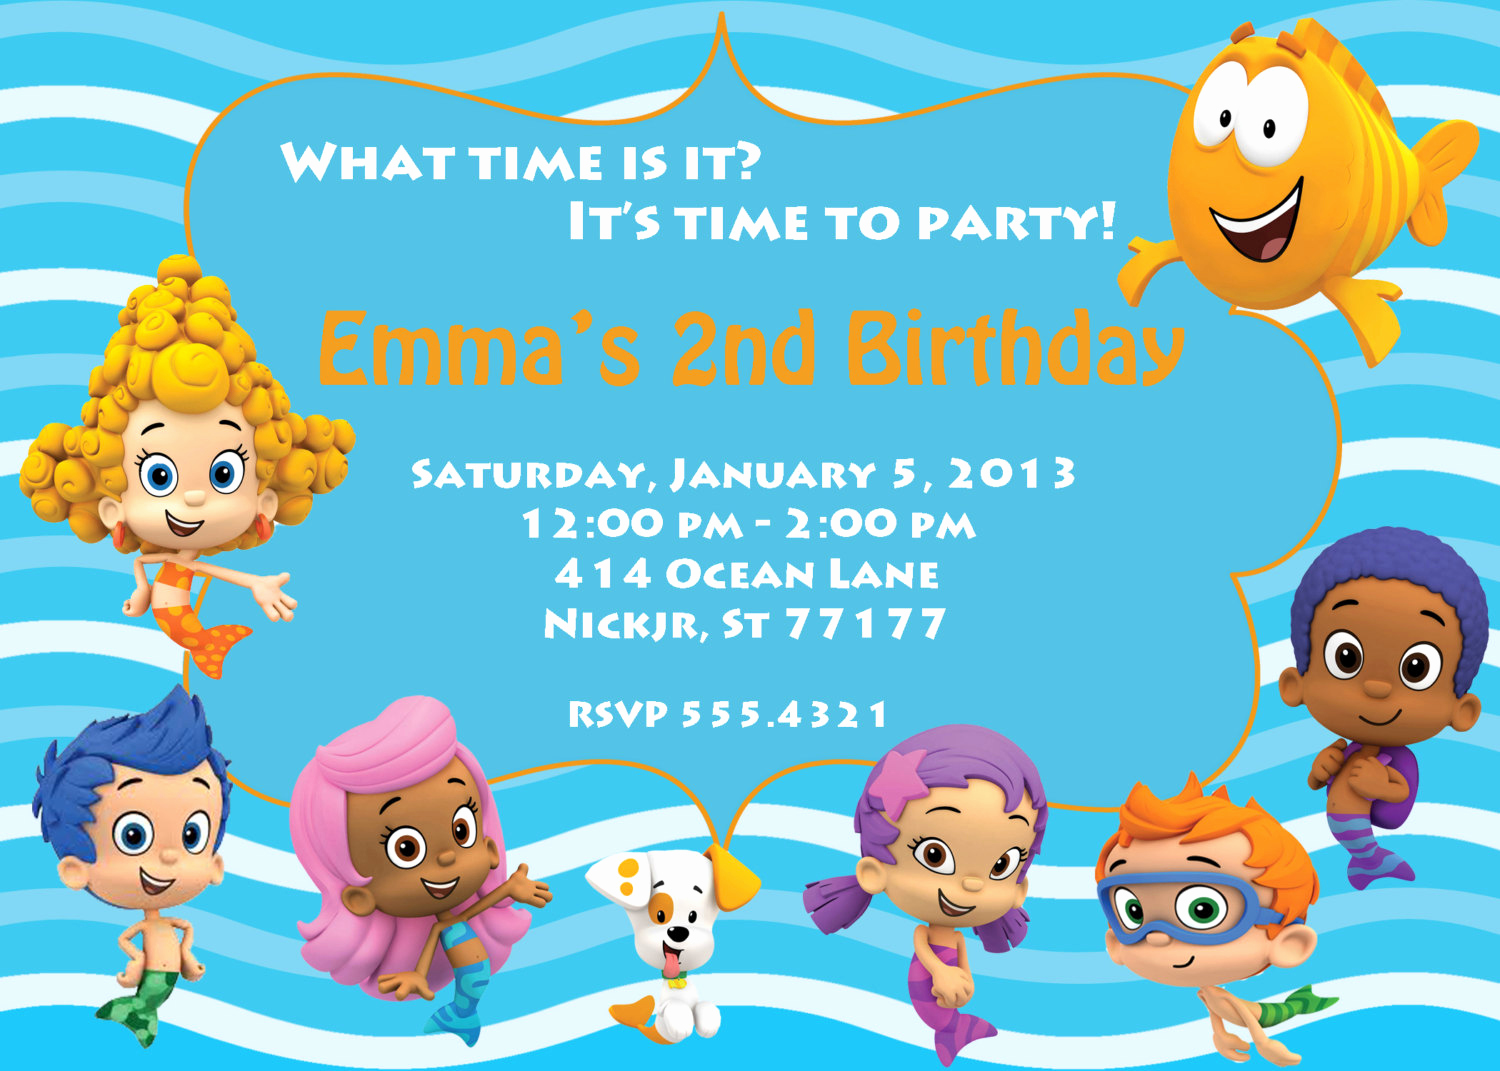 Bubble Guppies Invitation Template Free Fresh Bubble Guppies Birthday Party Invitations